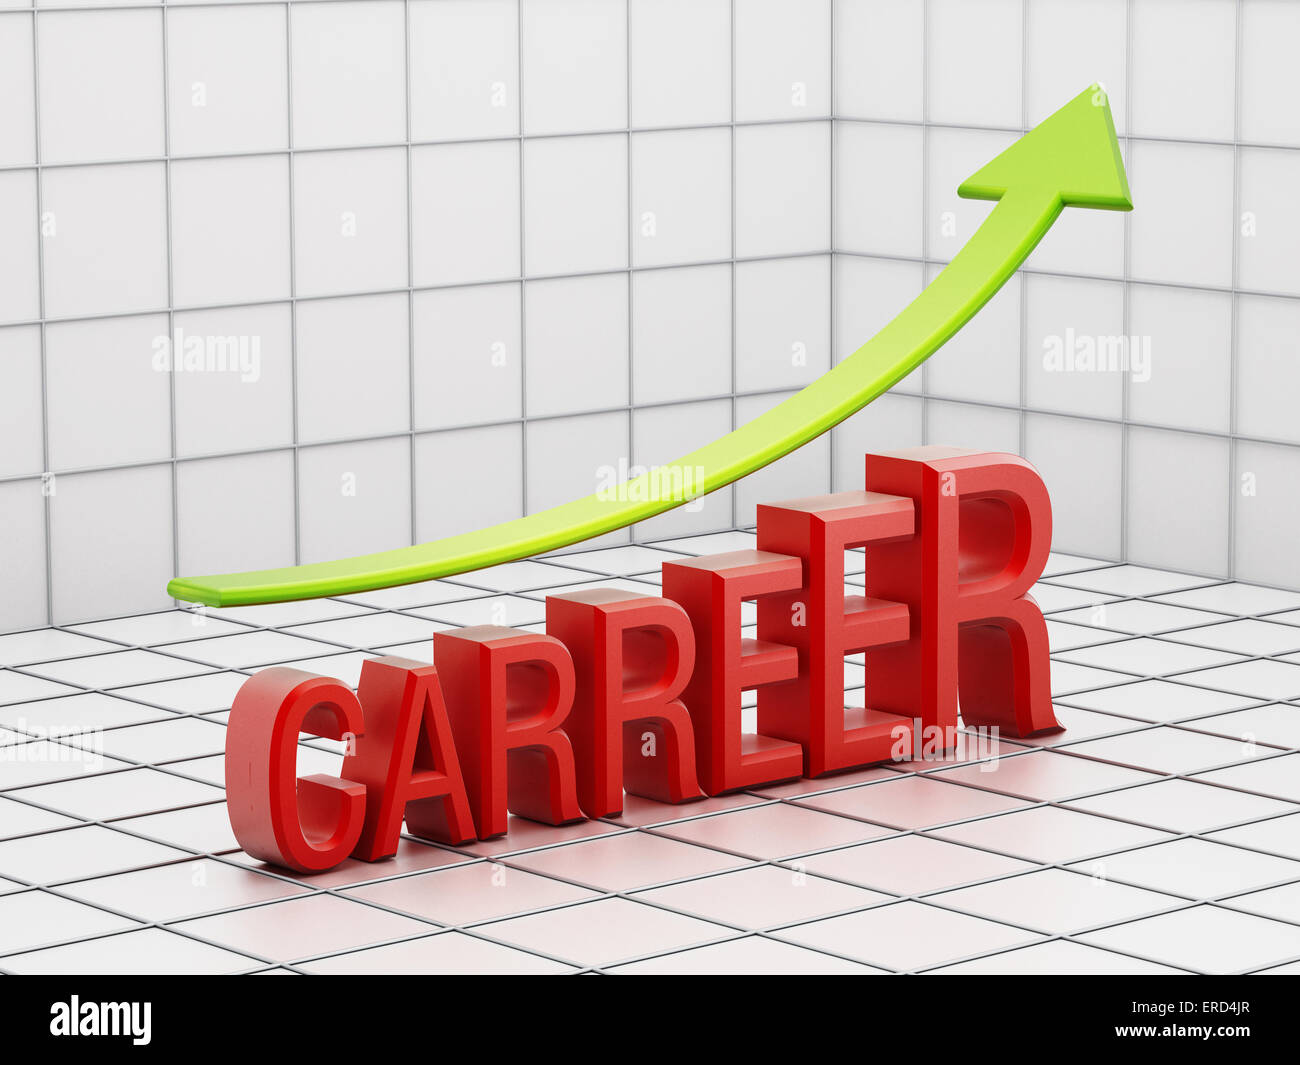 Rising carreer success concept with arrow. - Stock Image